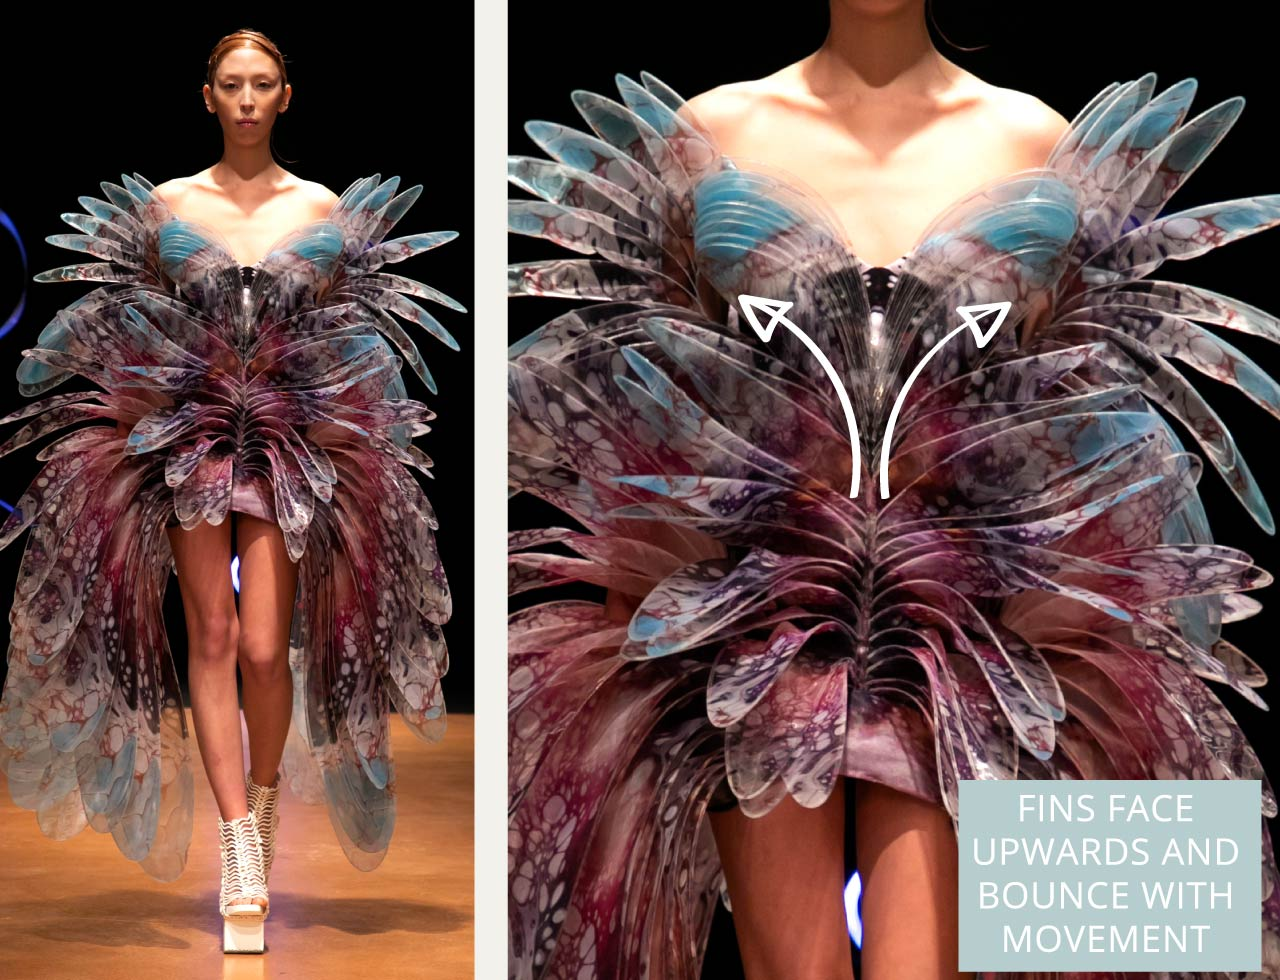 Contemporary Couture Techniques at Iris van Herpen | The Cutting Class. Lasercut PetG fin outlines face upwards to create bouncey movement. Couture SS20.